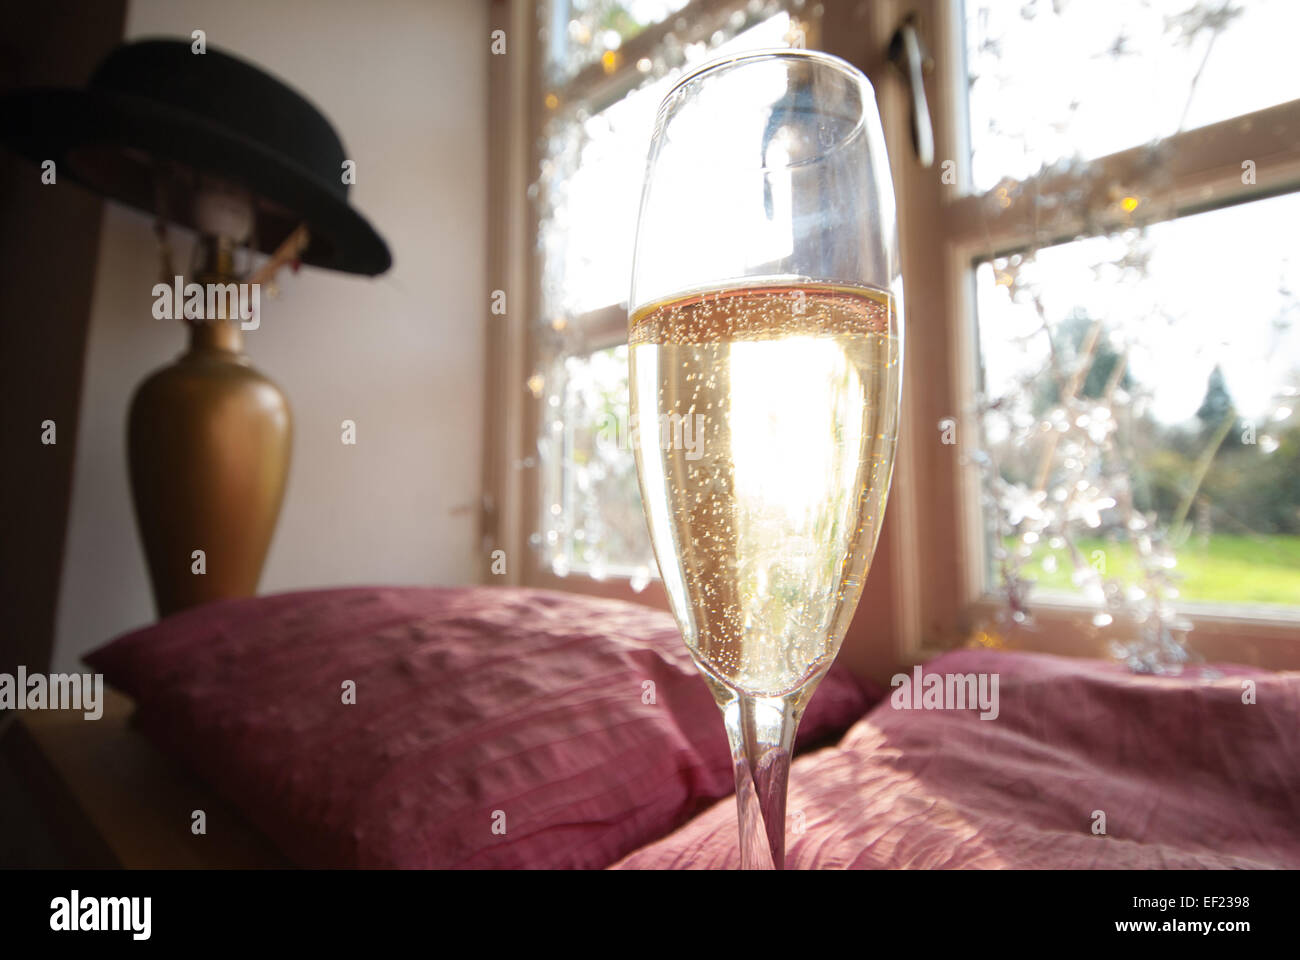 A glass of champagne beside a window in a sunbeam, with Christmas lights in the background. The sunlight glints - Stock Image